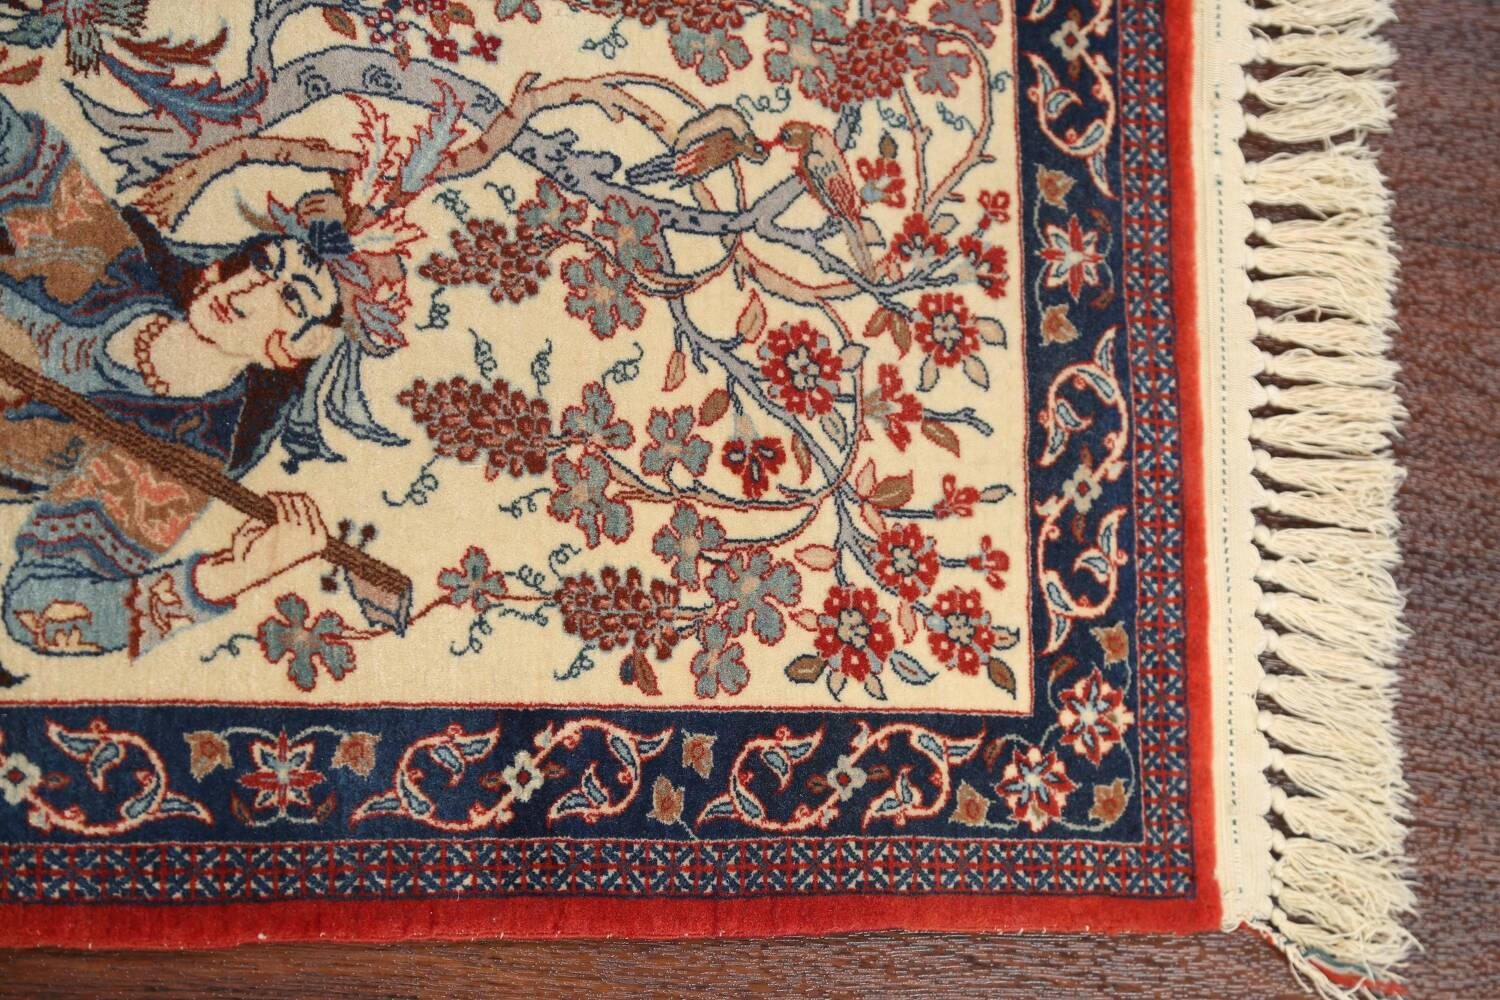 Antique Vegetable Dye Tableau Isfahan Persian Area Rug 2x3 image 10